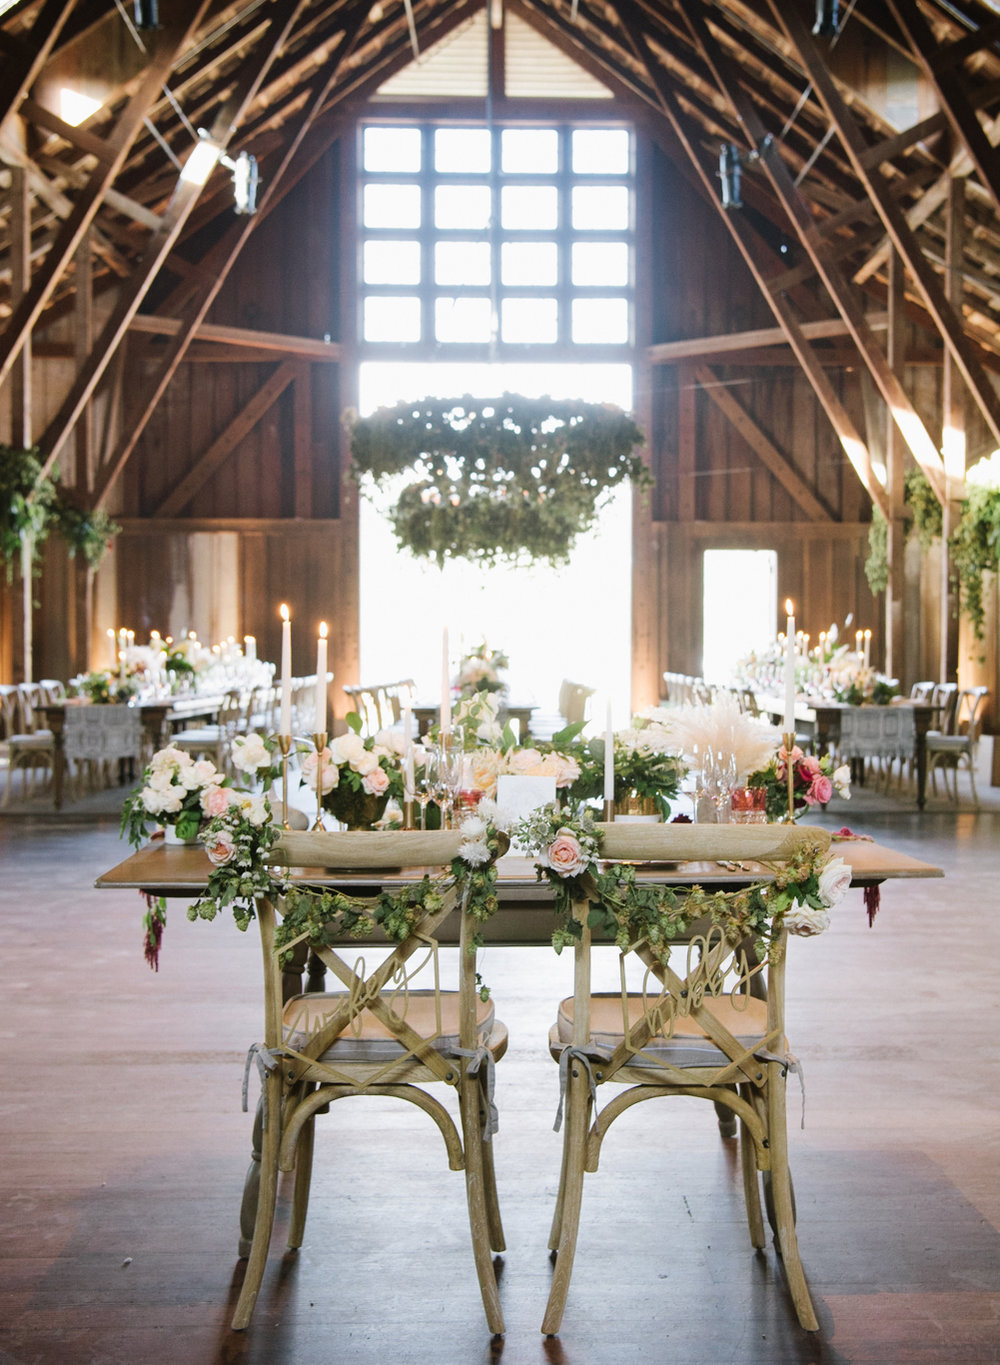 A couple table decorated with pampas grass and blush florals in a wedding reception barn in Carmel, California; Sylvie Gil Photography